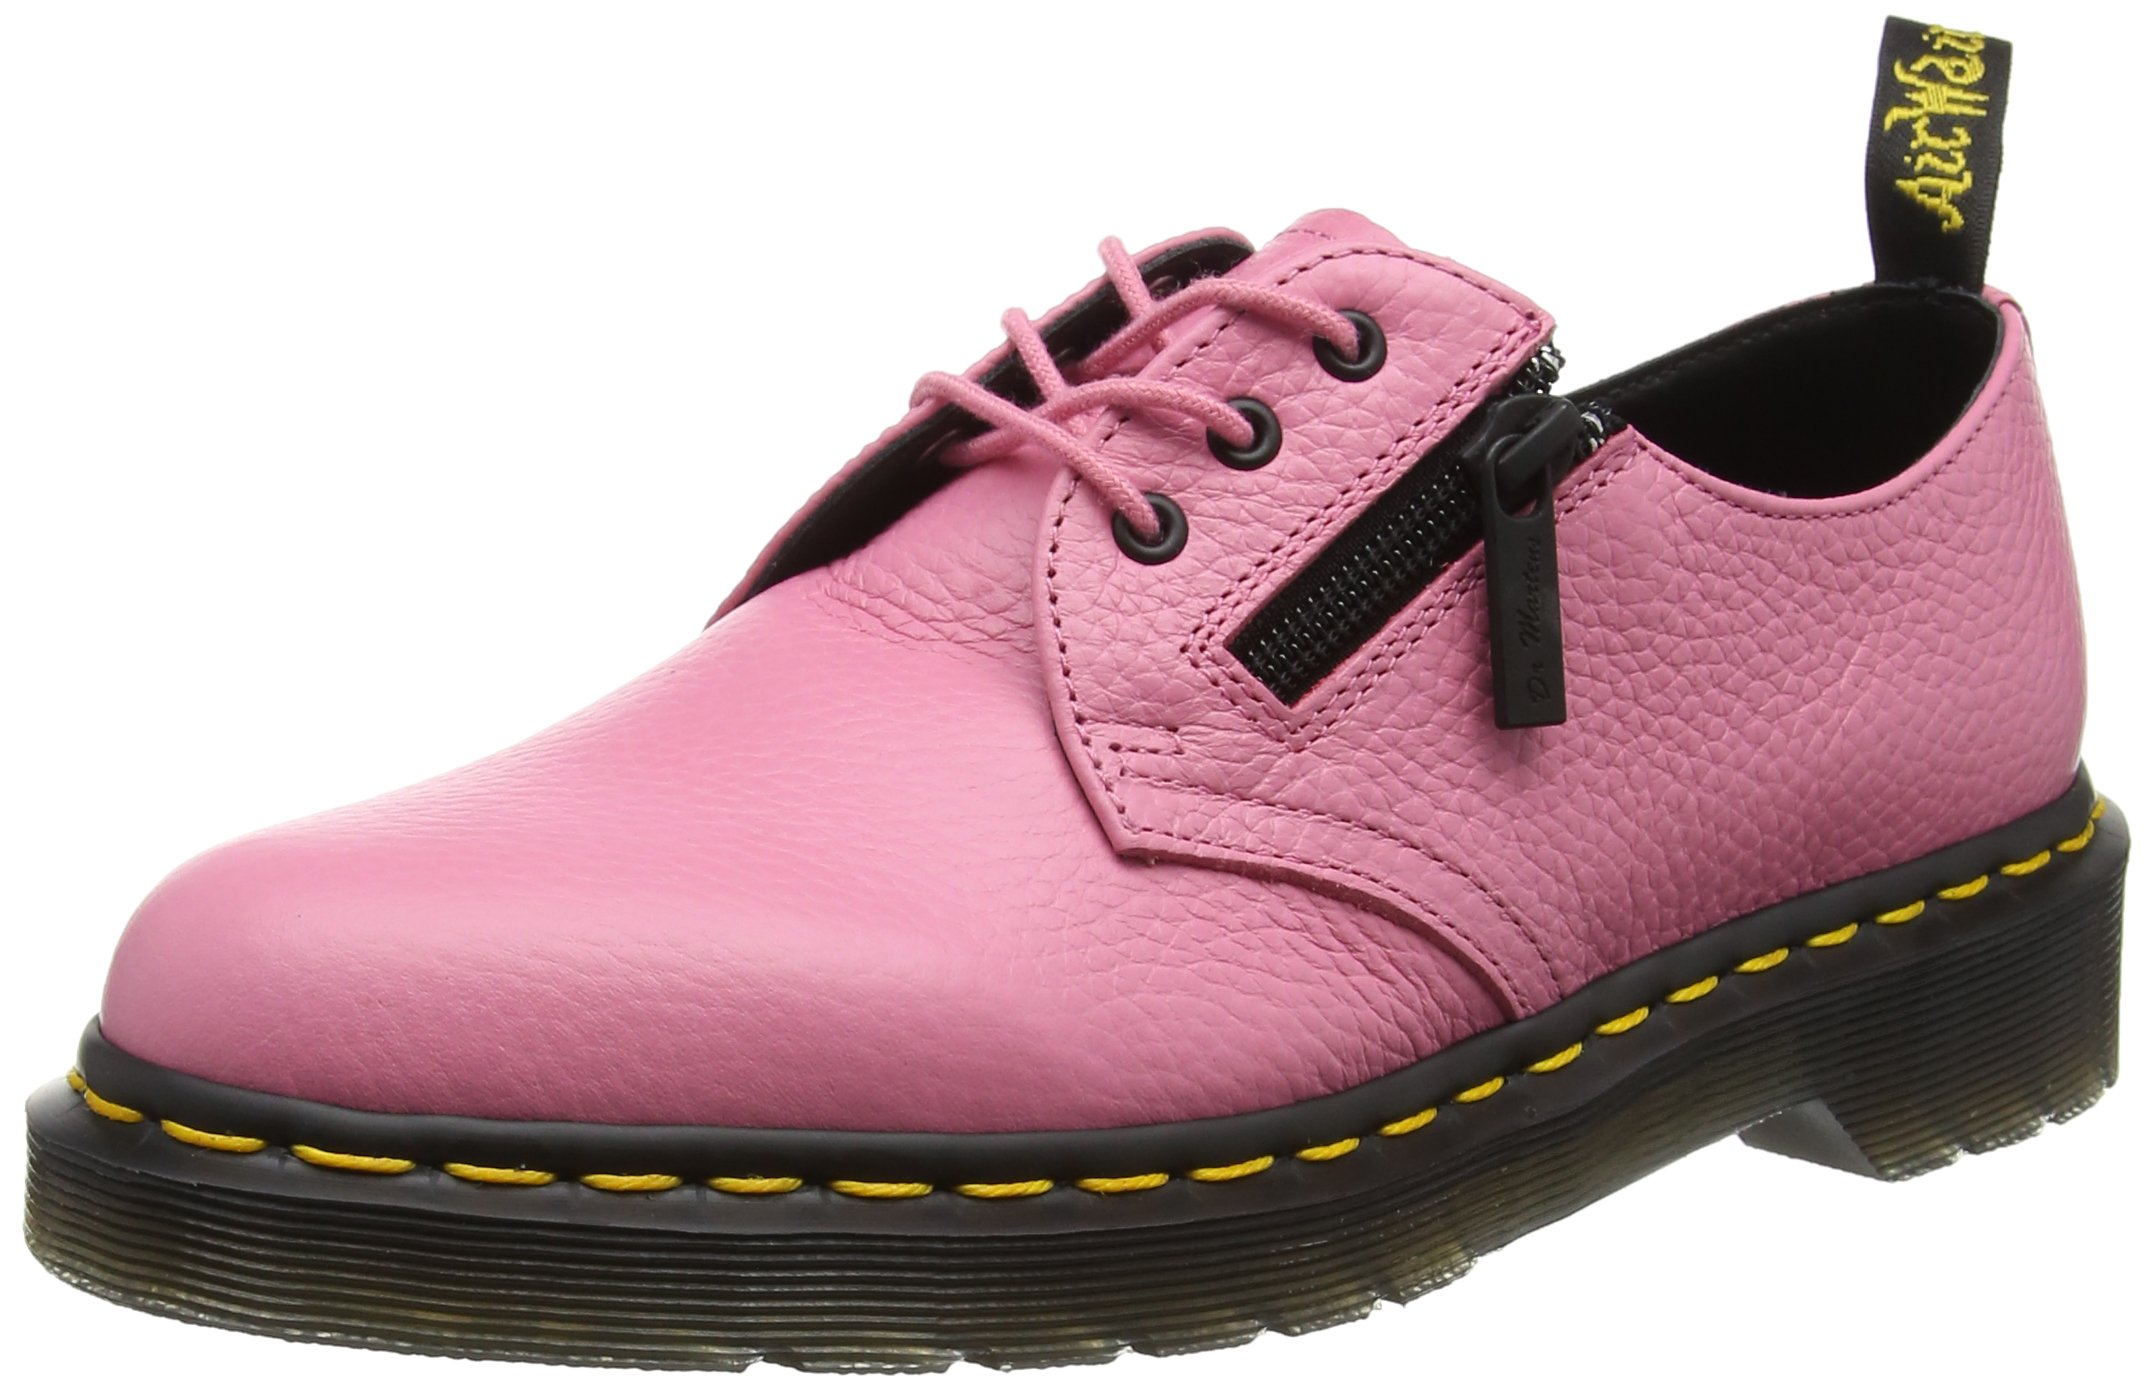 Dr. Martens 1461 3-Eye Zip Shoe(Women's) -Black Aunt Sally Cheap Cost Sale With Credit Card Cheap Perfect Perfect Sale Online 3mC2Dly